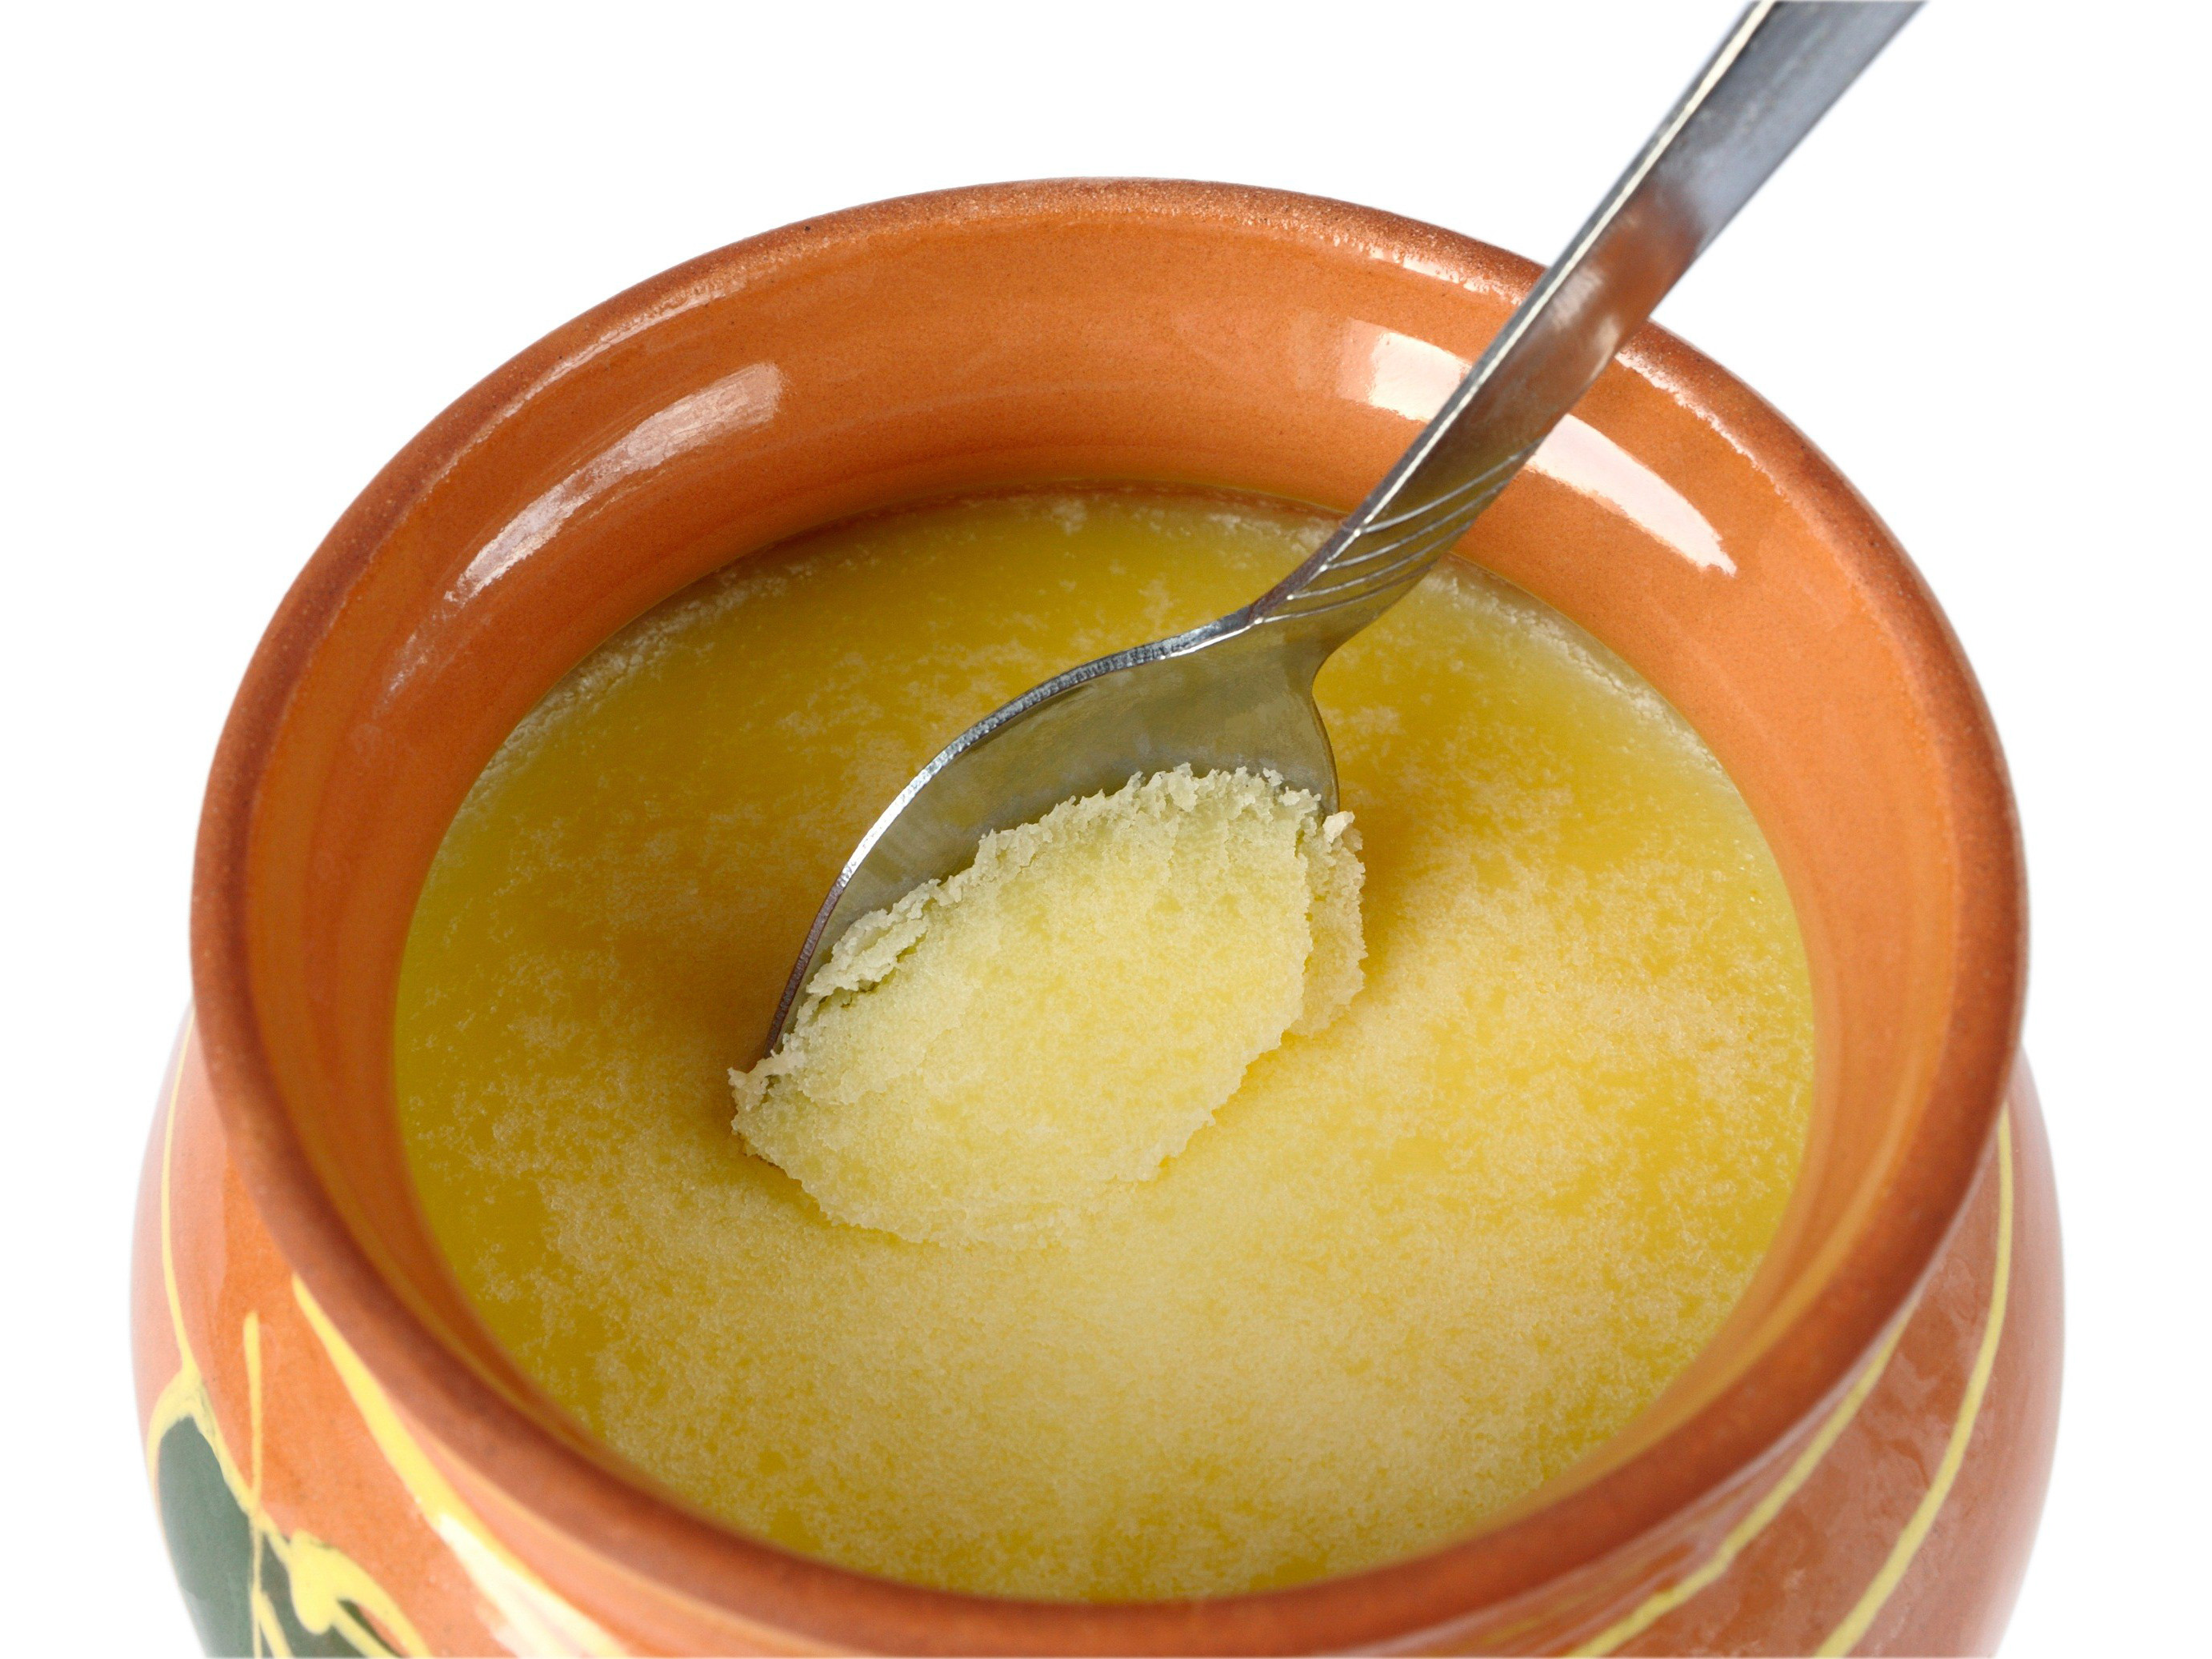 Monthly Ghee Products